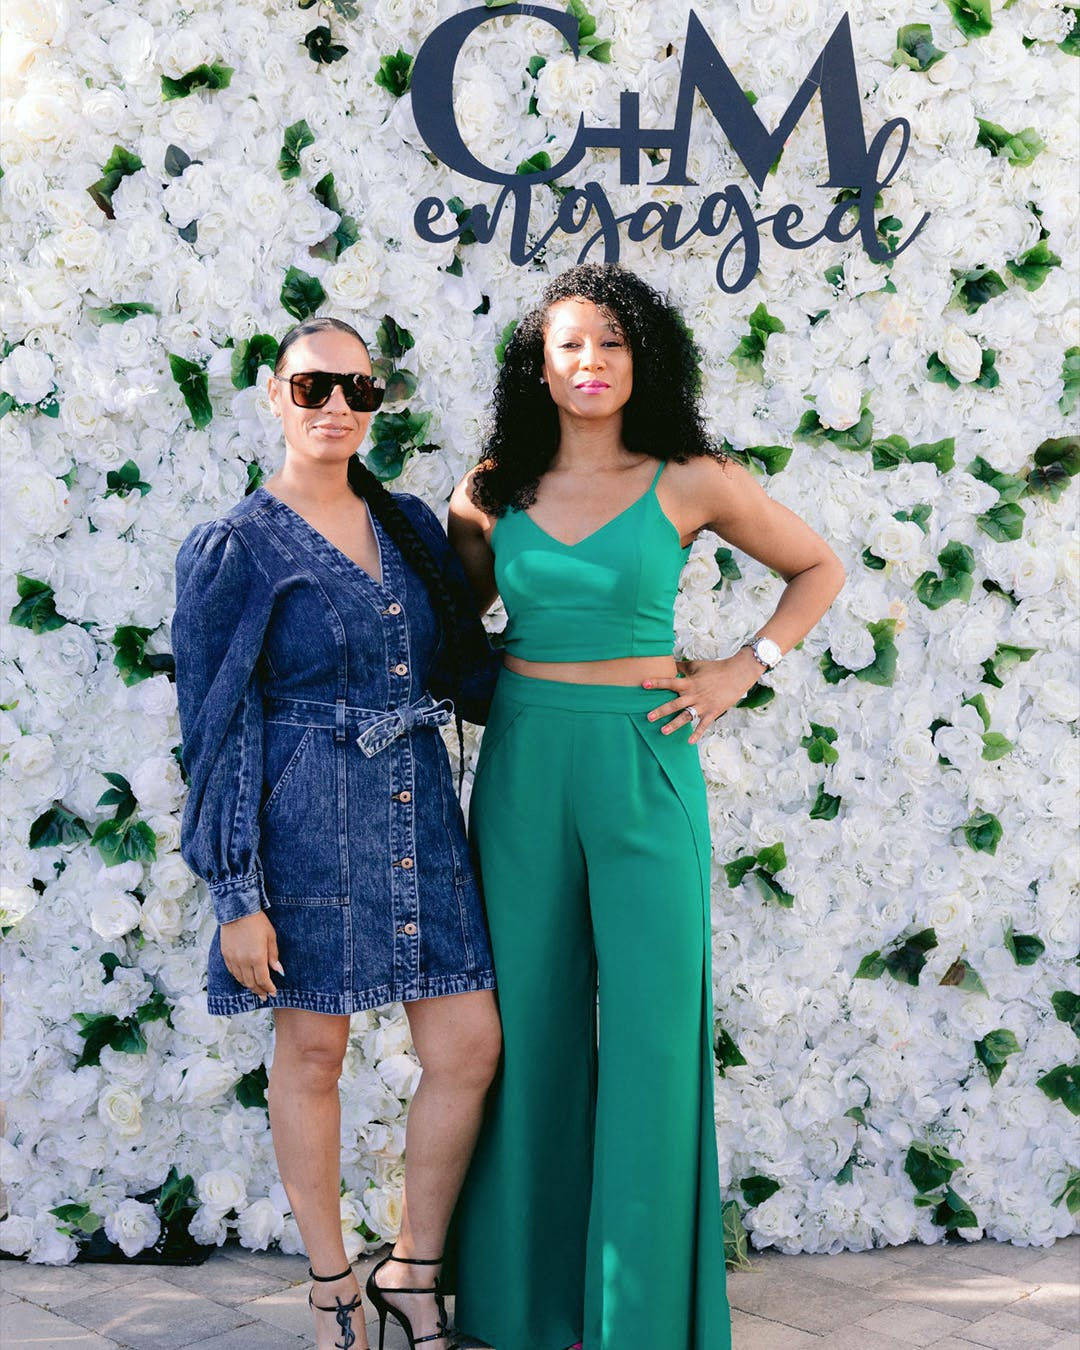 Floral photo backdrop for summer engagement party | PartySlate